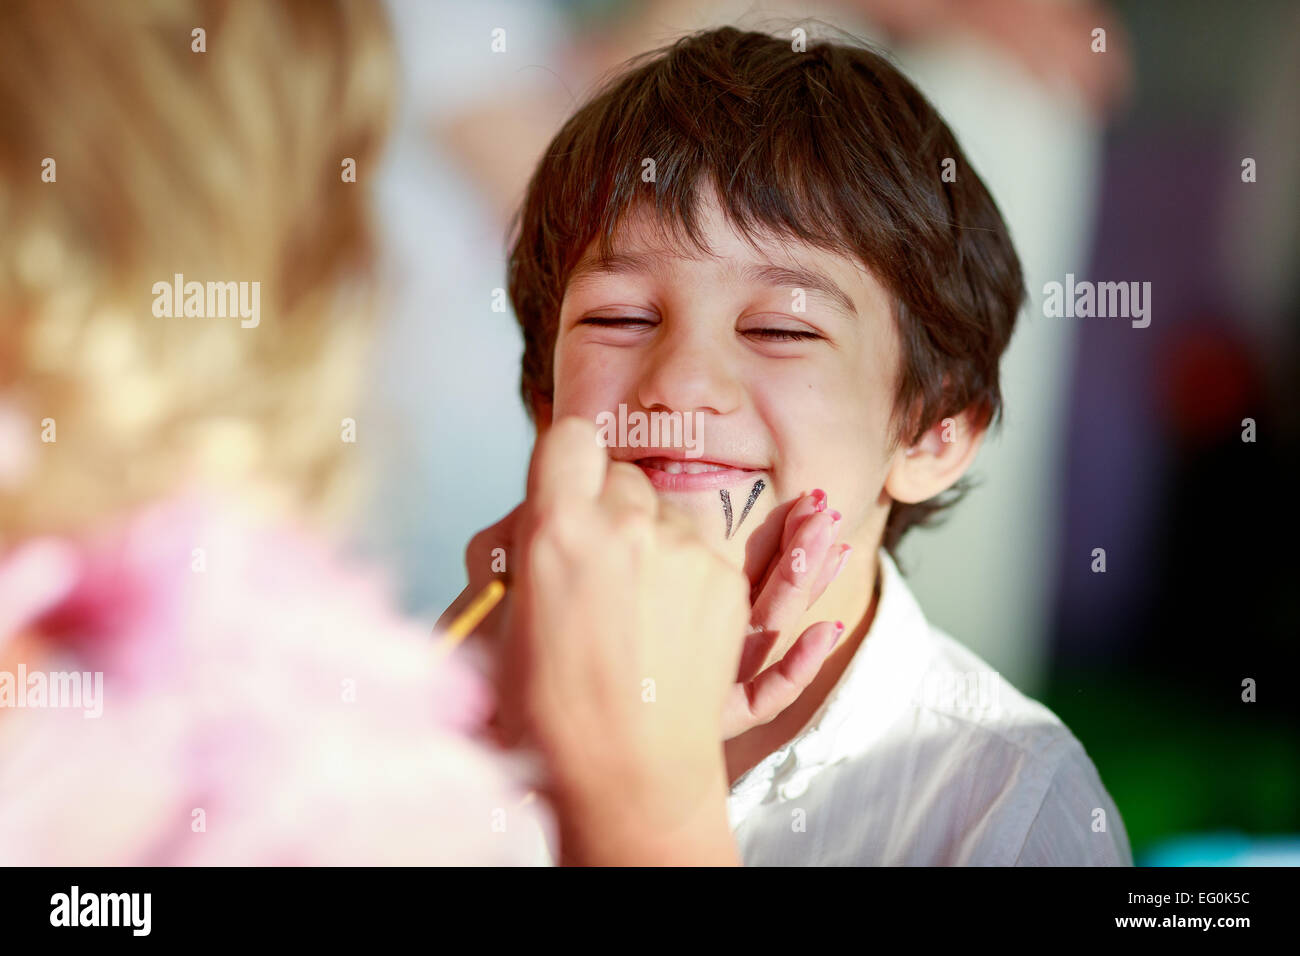 Bulgaria, Sofia, Young boy (4-5) getting his face painted - Stock Image